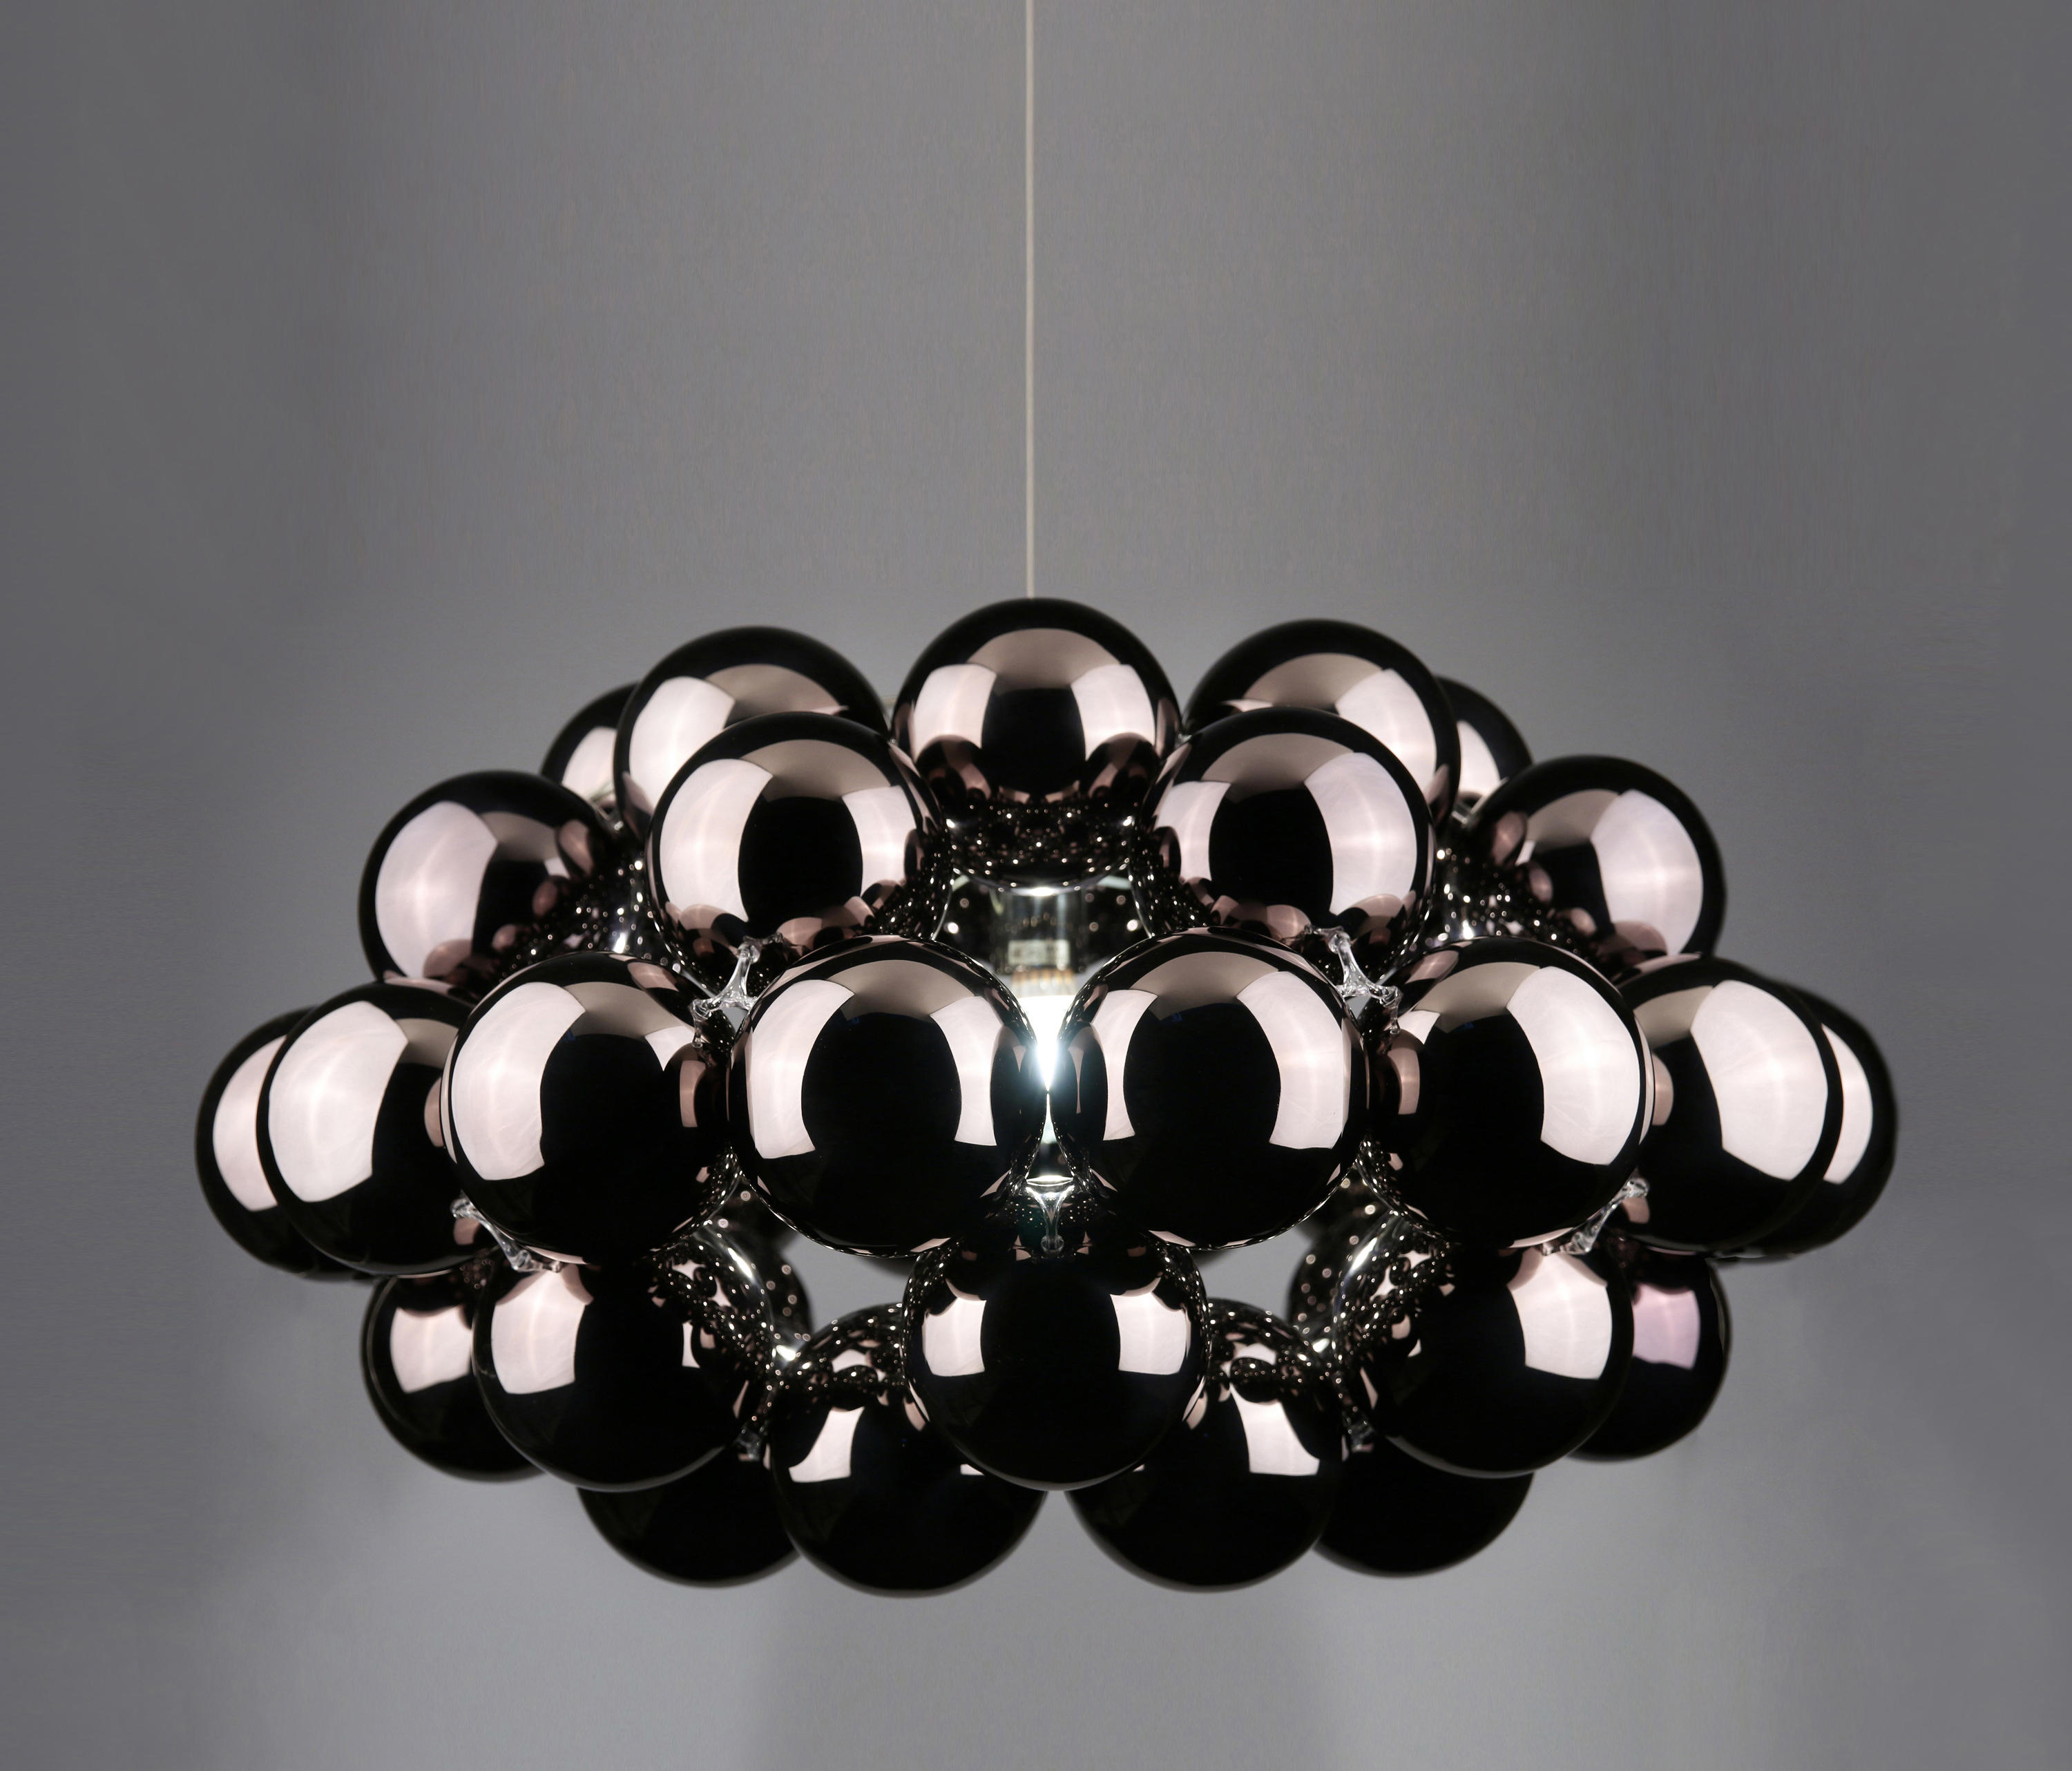 Suspension Octo Beads Octo Gunmetal Pendant Suspended Lights From Innermost